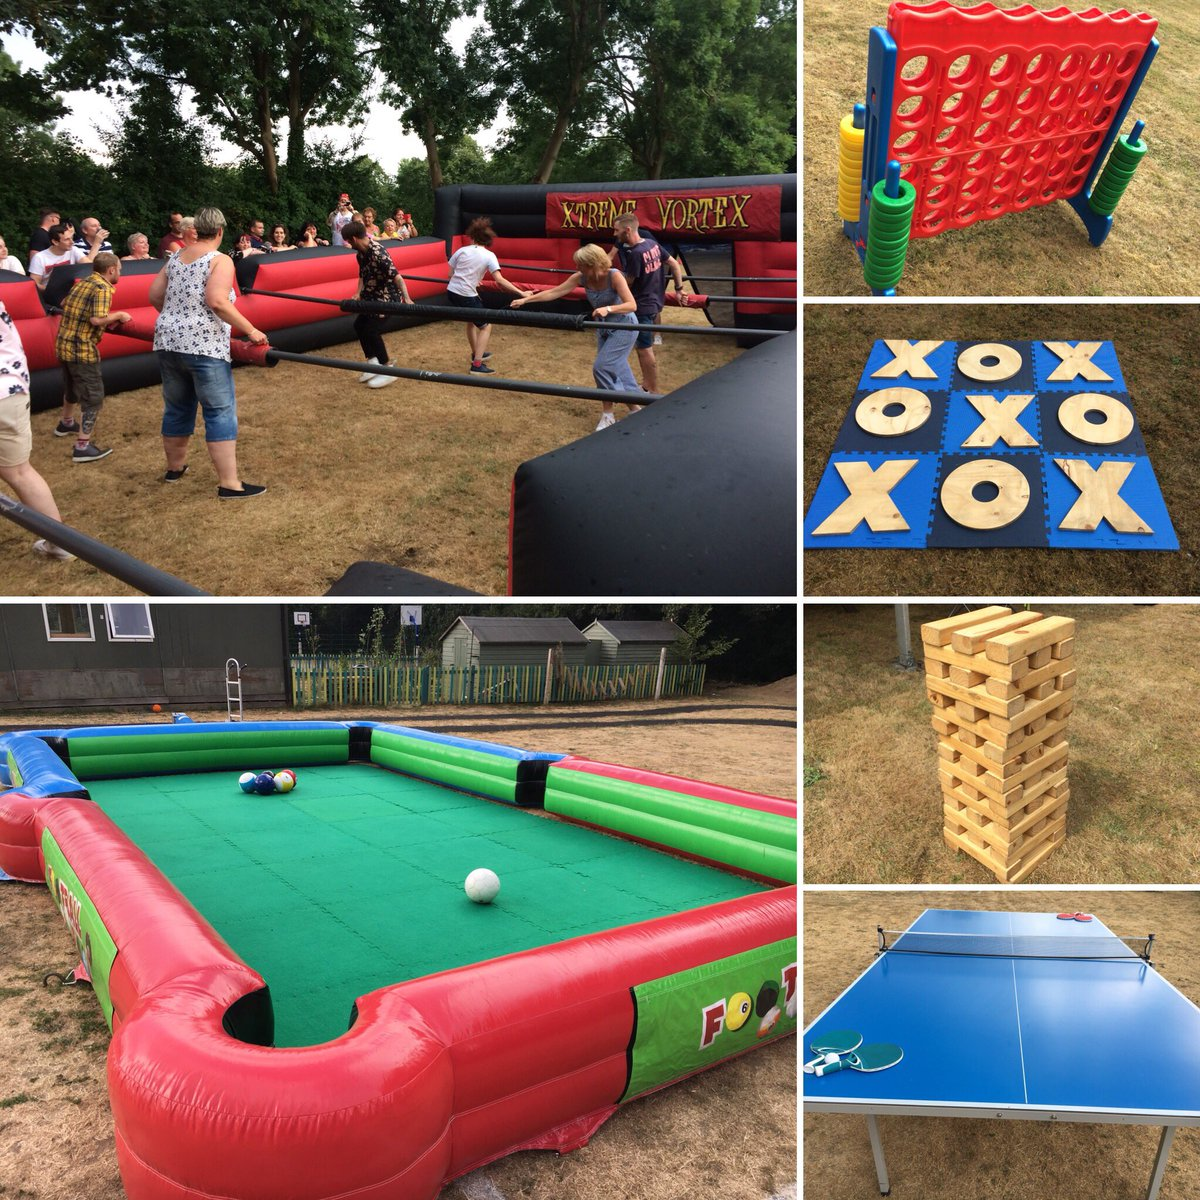 XtremeVortexcouk On Twitter More Fun Events With Our Human Table - Human pool table